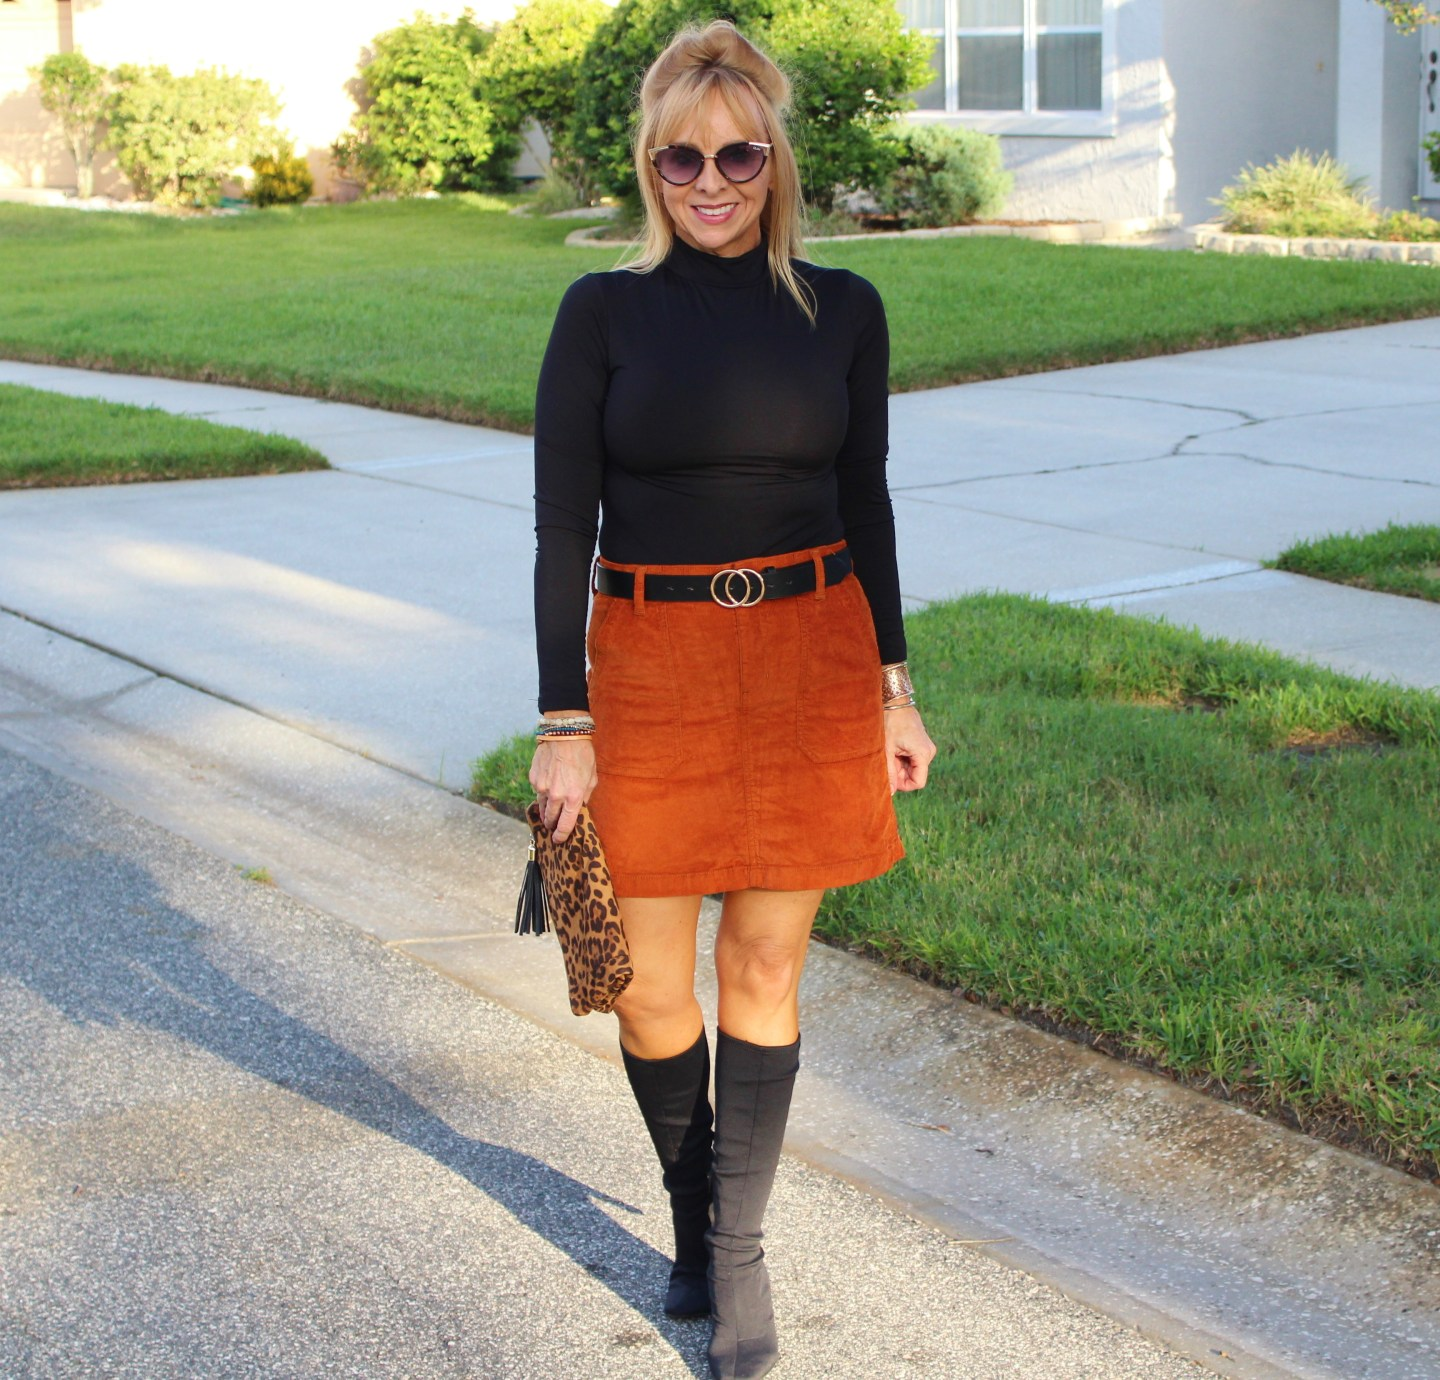 Corduroy Skirt + Black Body Suit